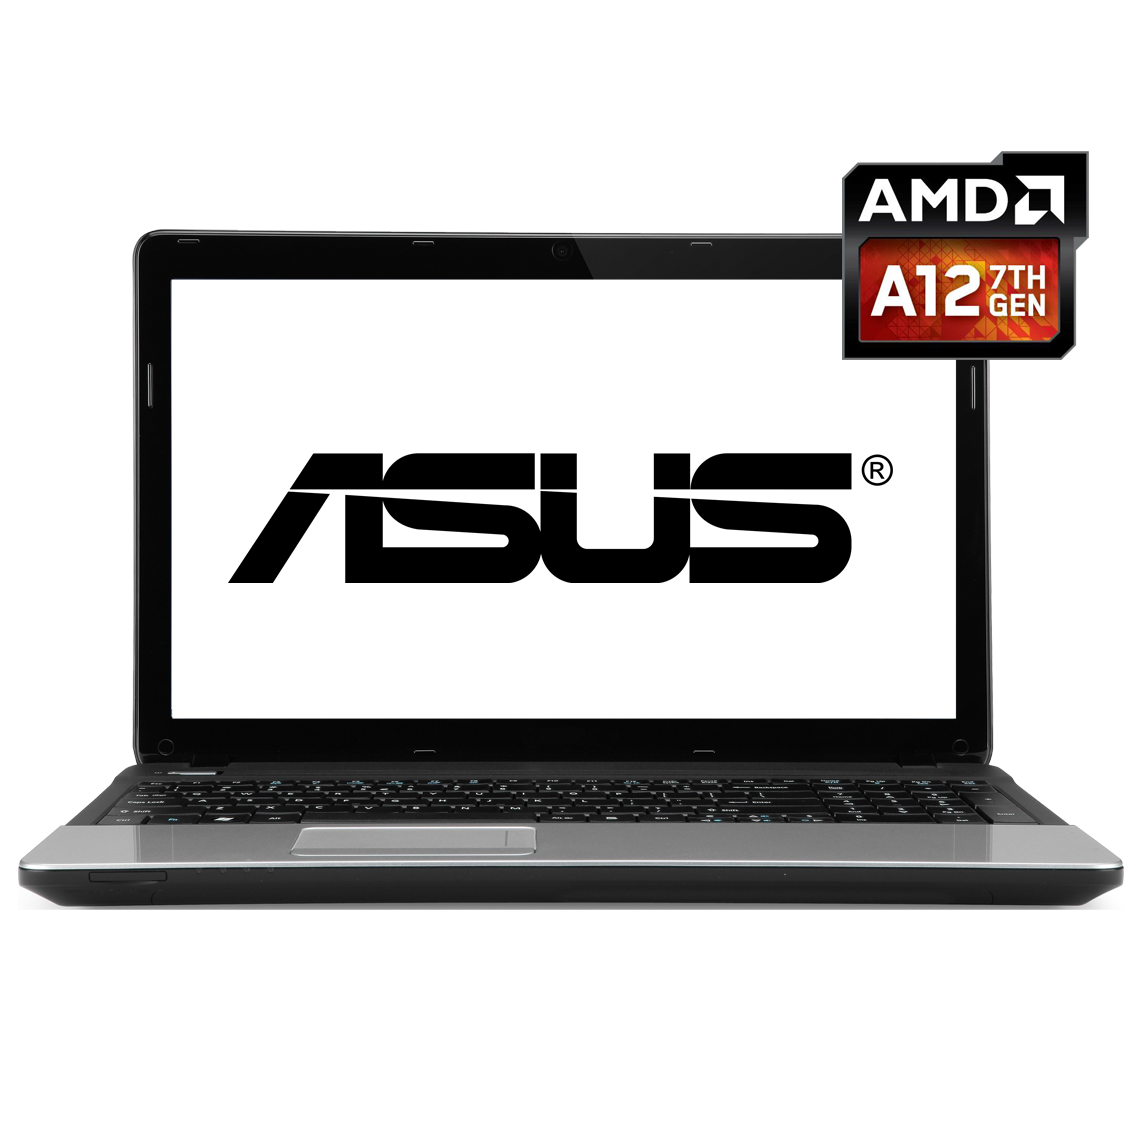 ASUS - 14 inch AMD A12